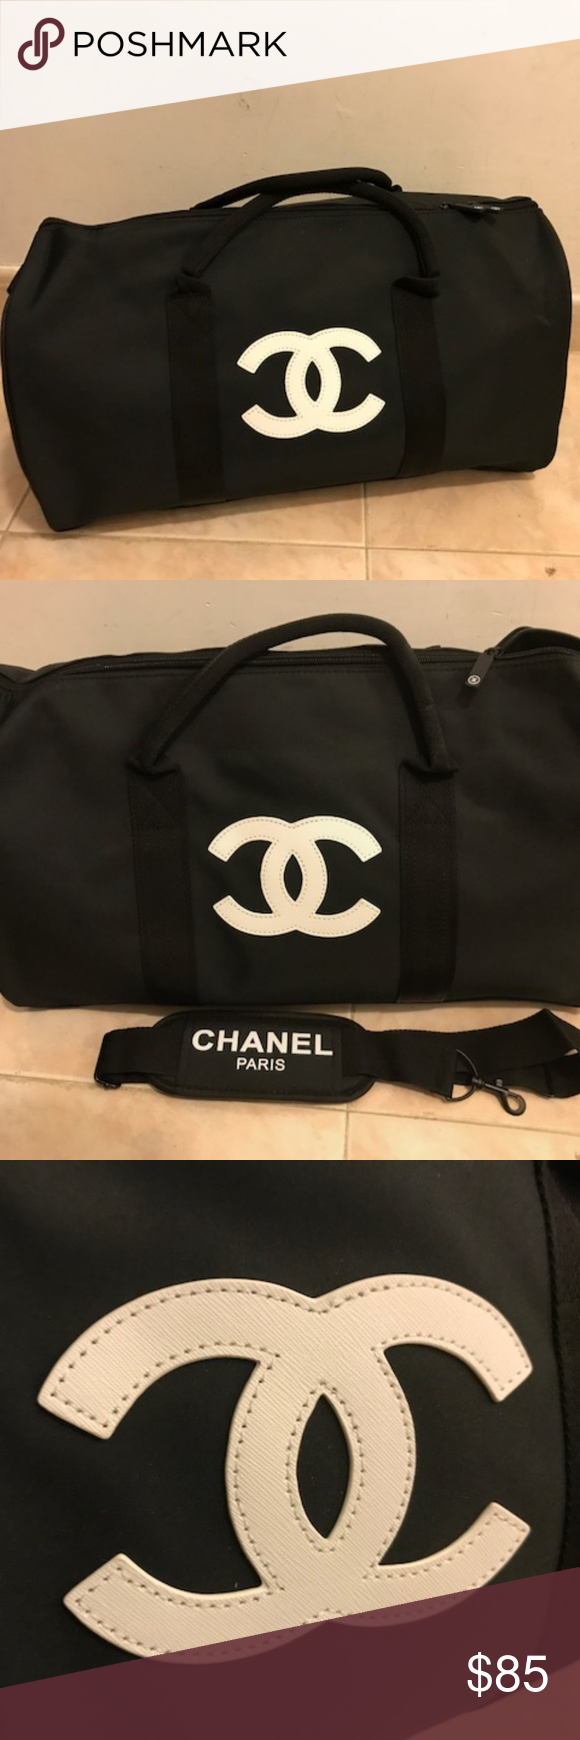 05c30edd3f34 Chanel VIP Gift Bag Duffle Travel Gym Bag | Vip, Gym and Authenticity